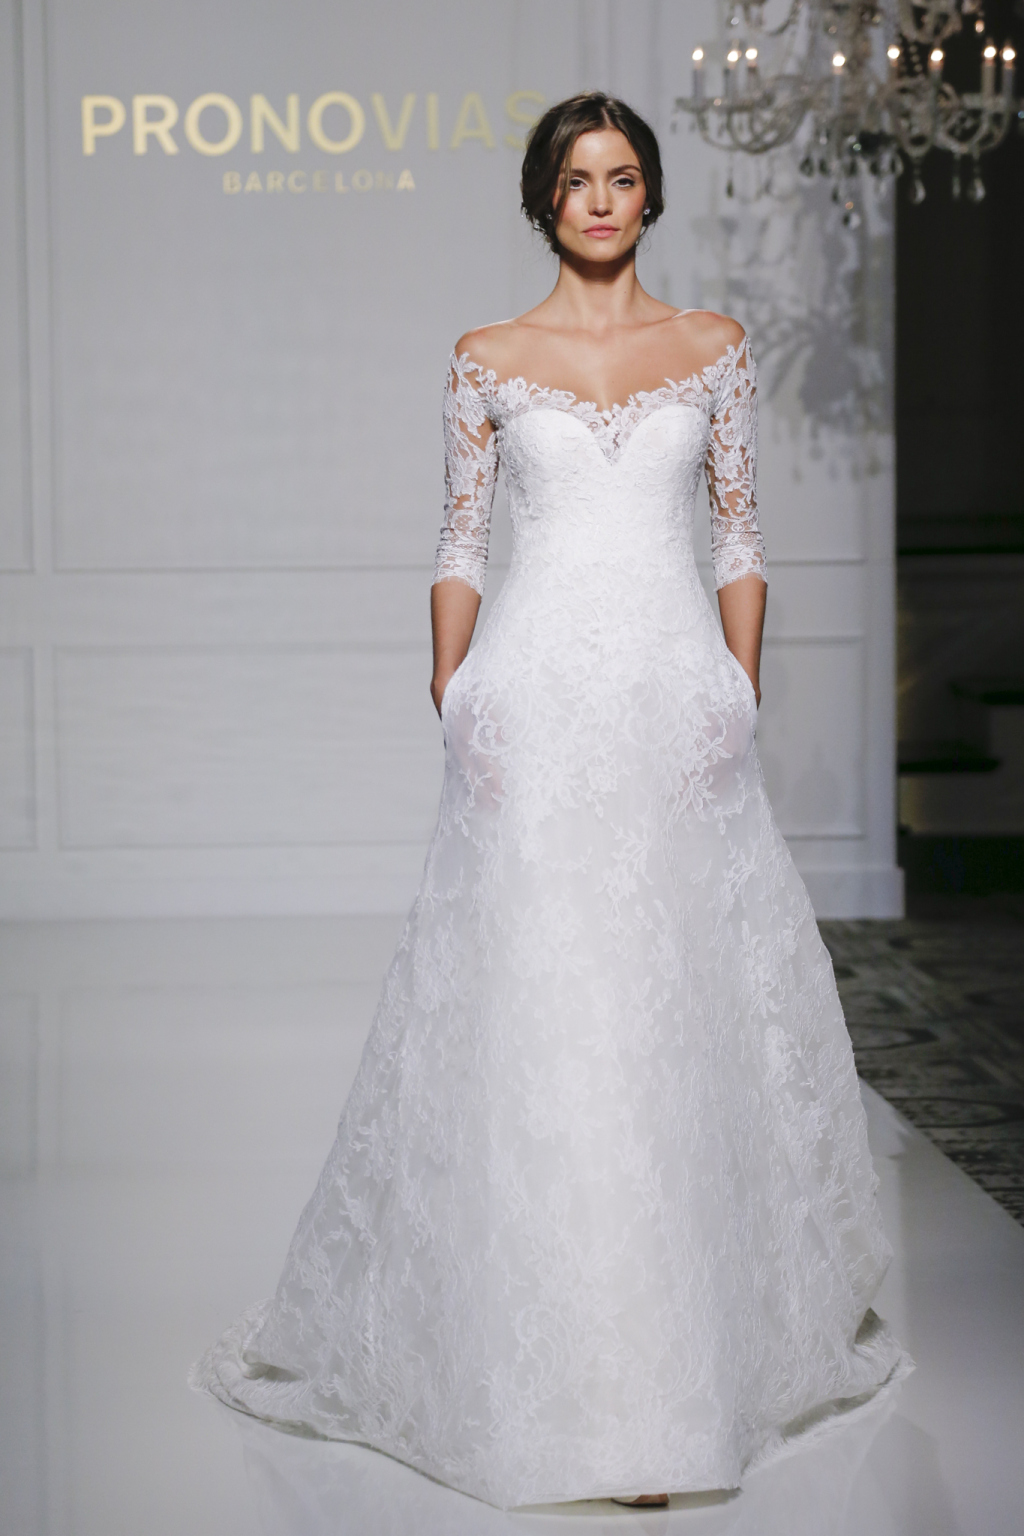 Wedding dress trends to follow in 2016 arabia weddings for New york wedding dresses online